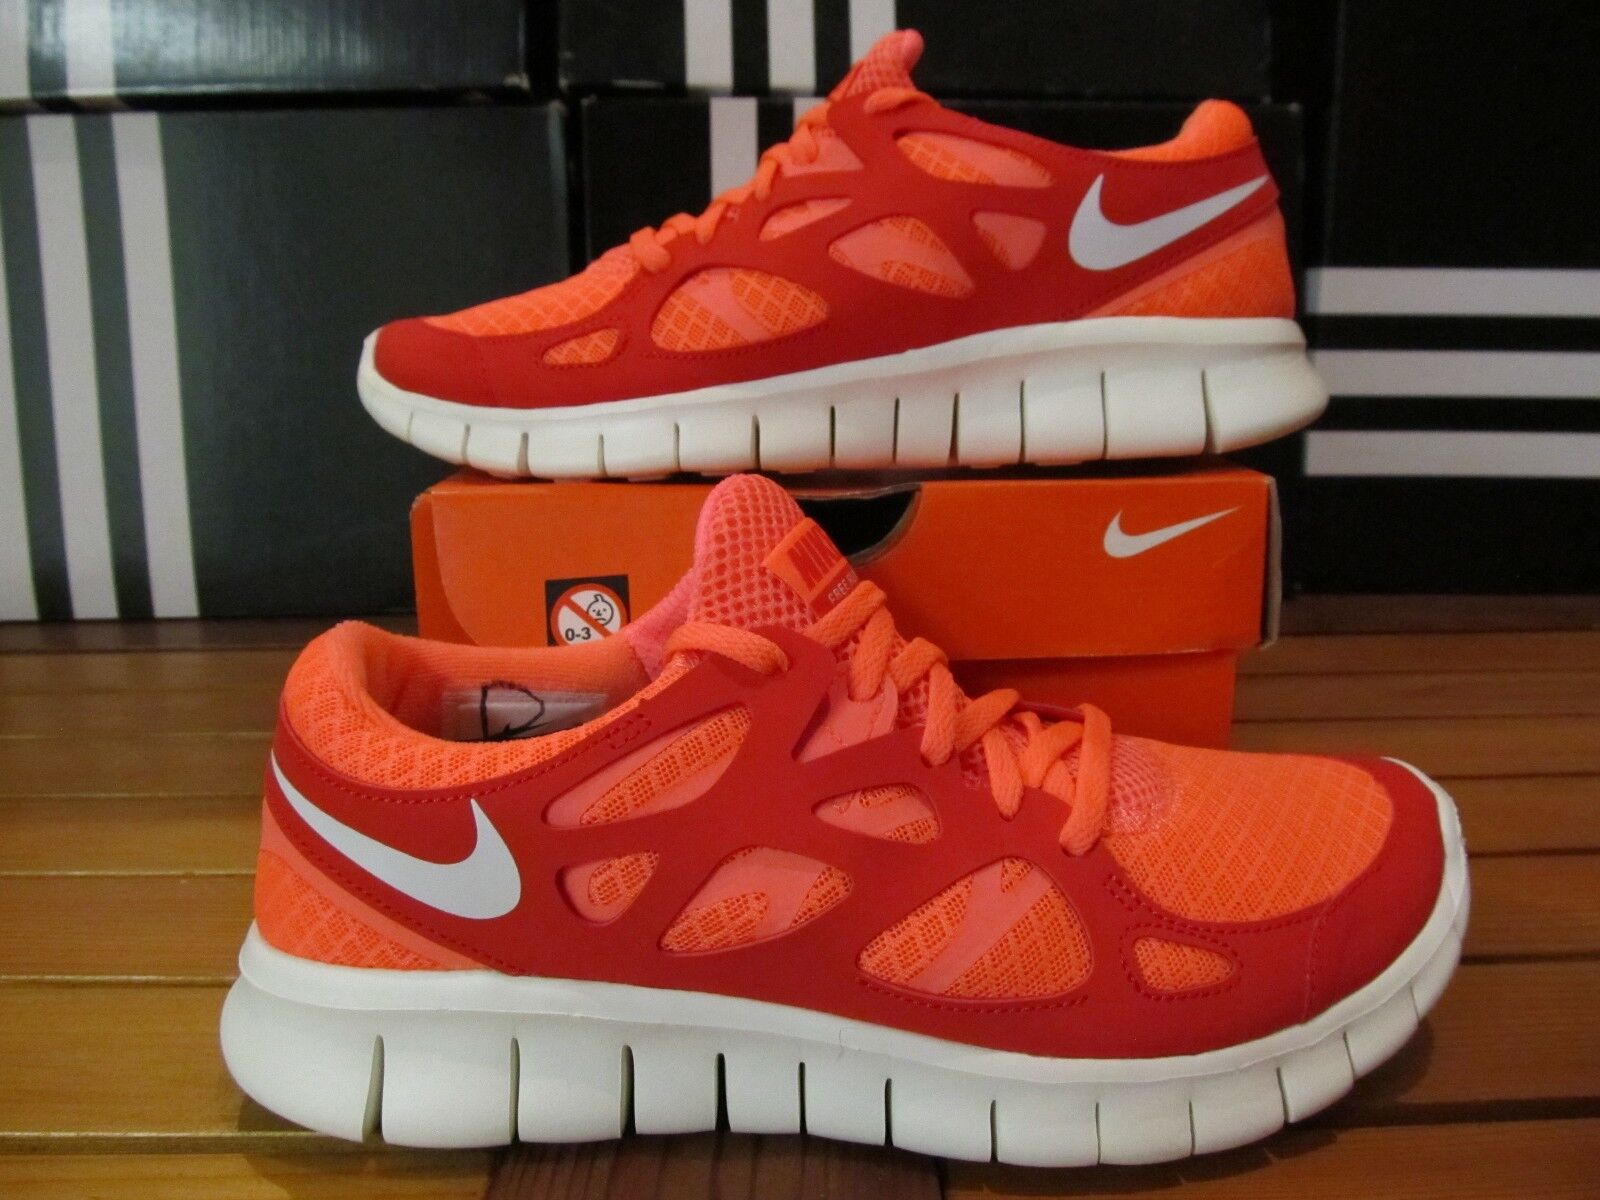 Neu Damen Nike Free Run 2 B-Ware Mango Rot Orange 6.5 443816 806 Laufschuhe